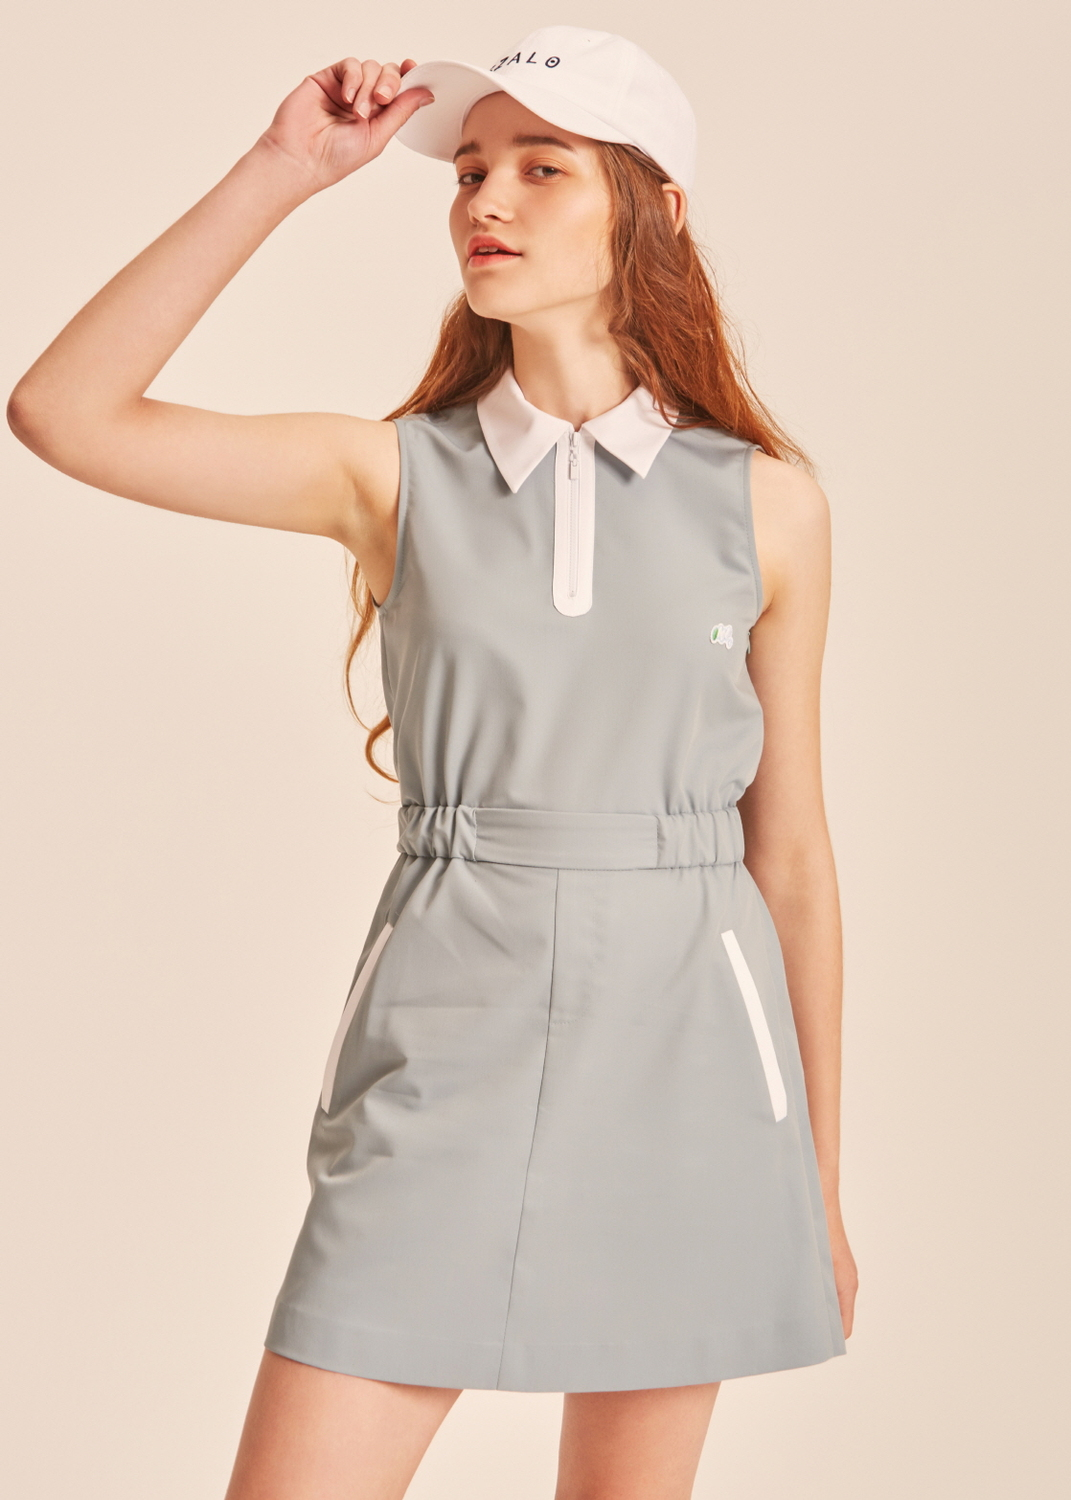 Kate mint waist band dress